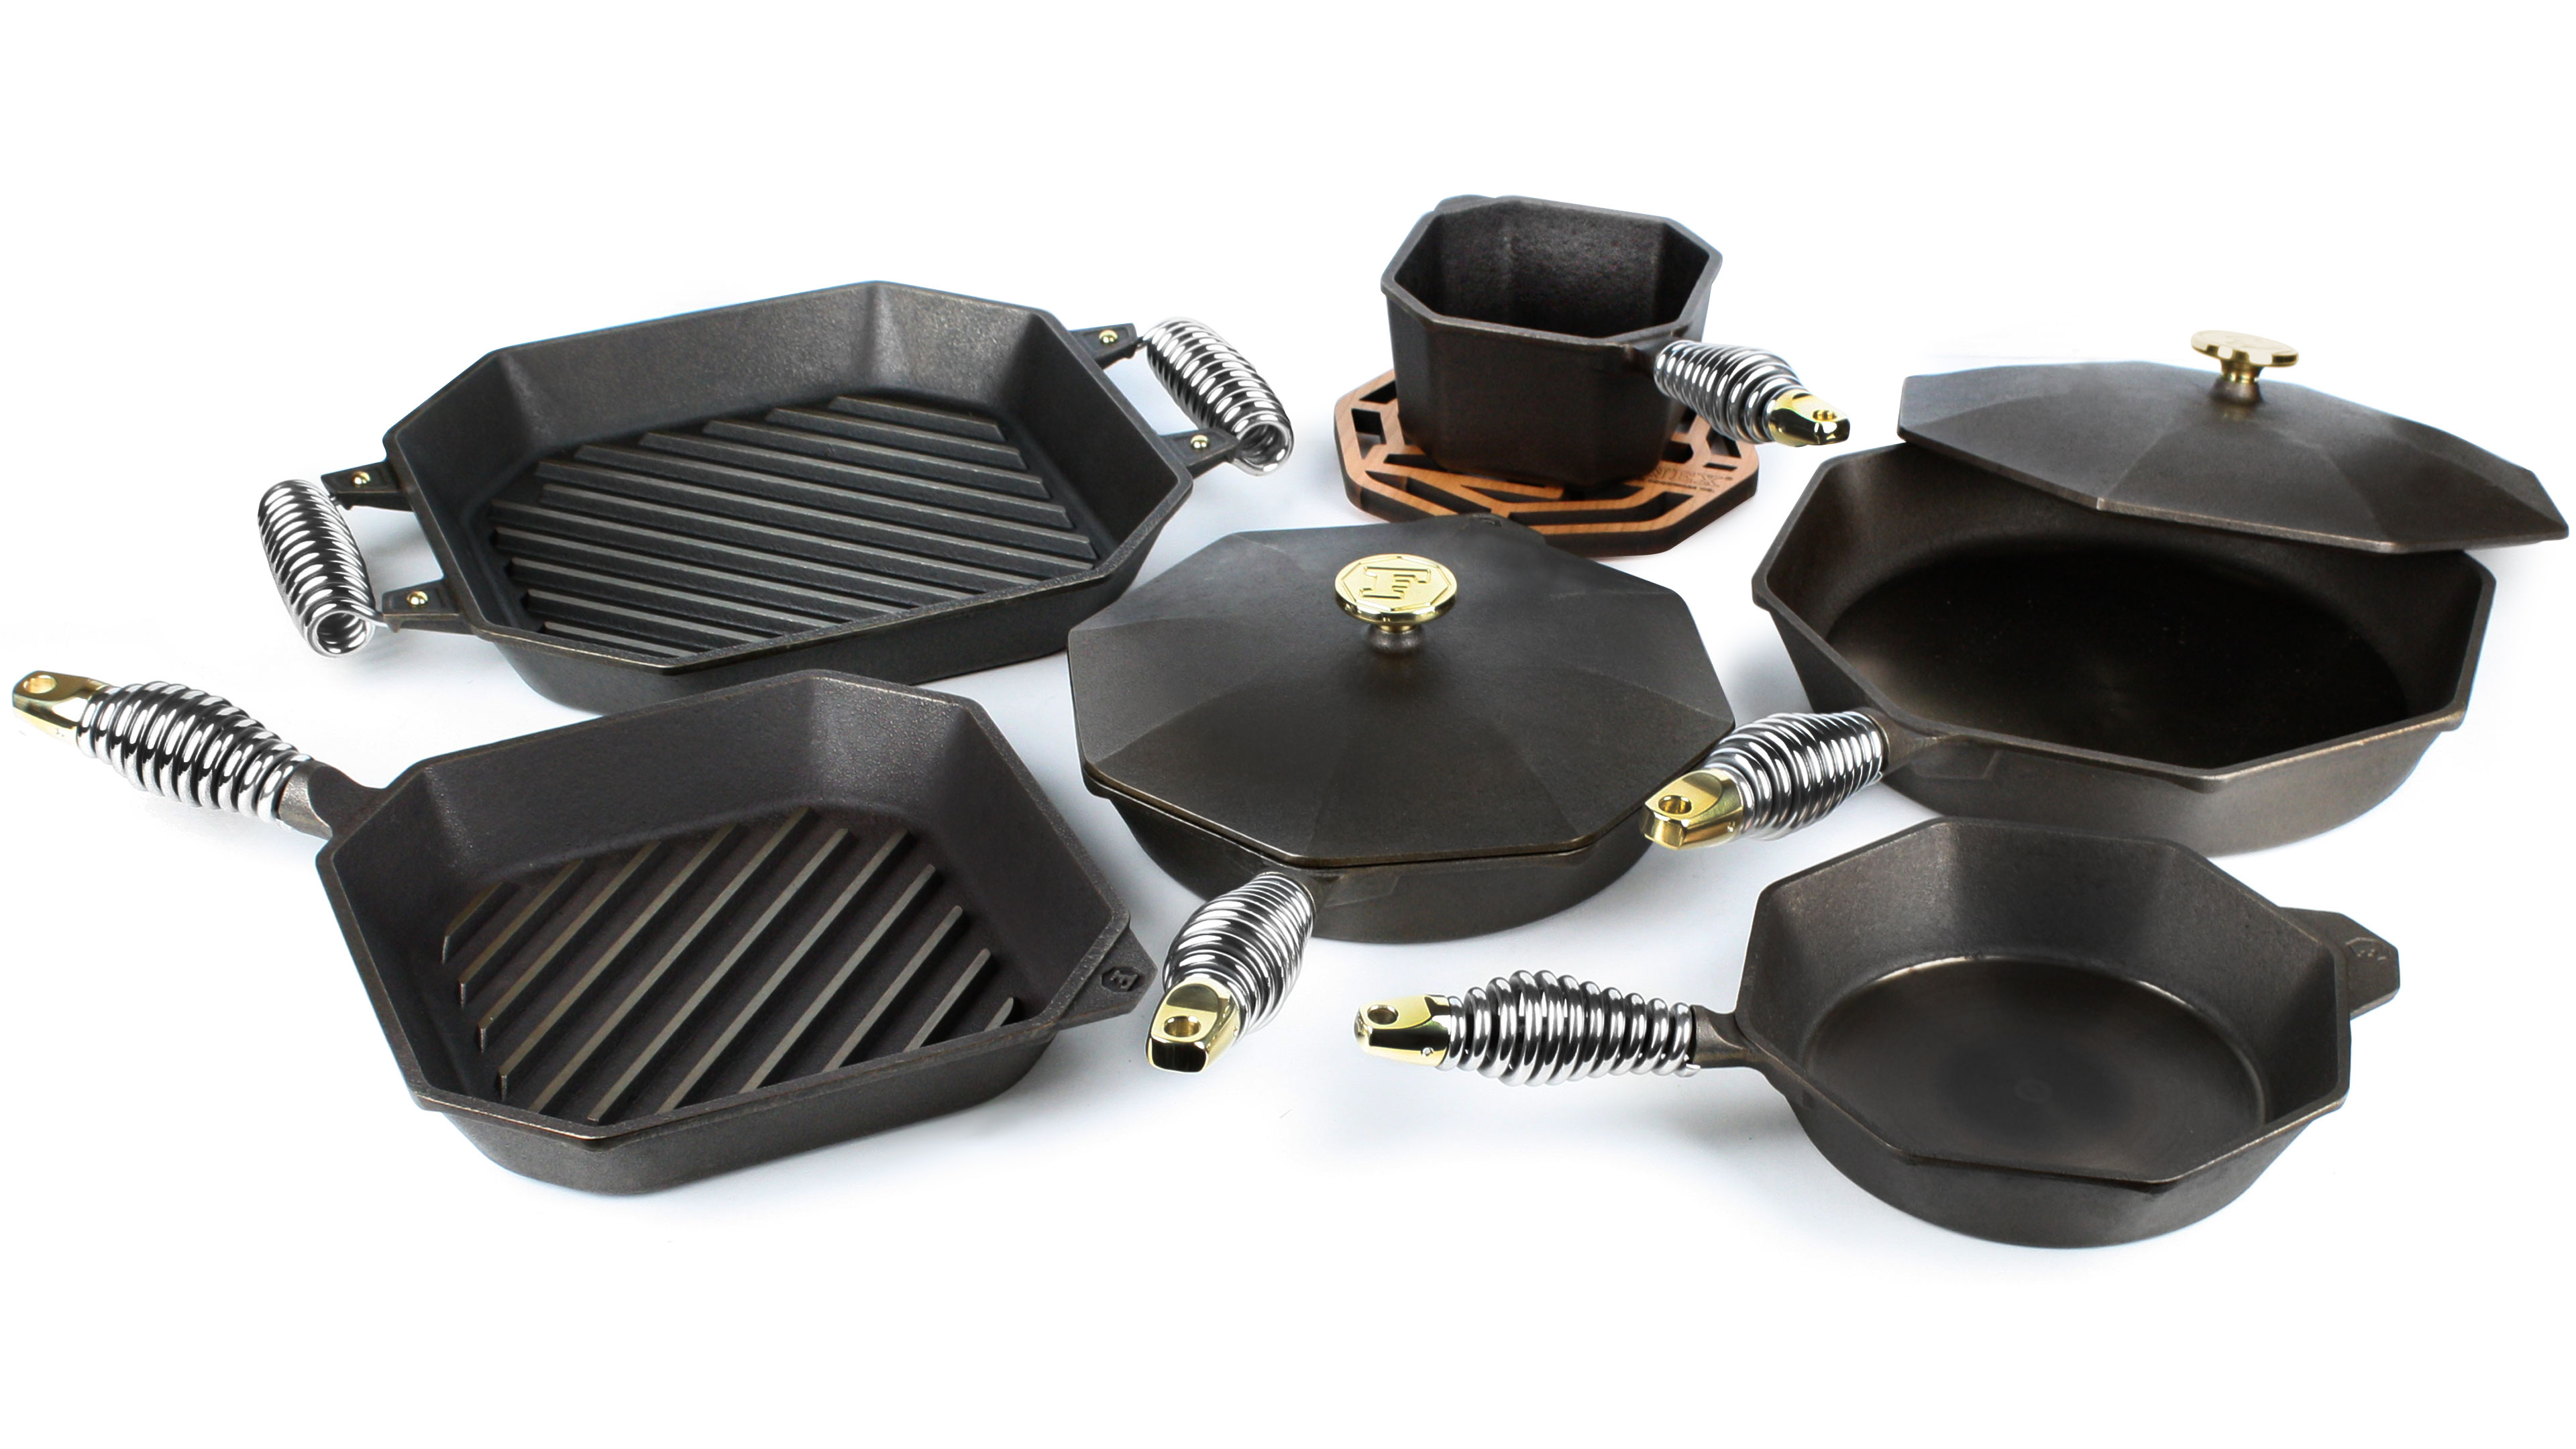 Finex Cast Iron Cookware Set 9 Piece Cutlery And More